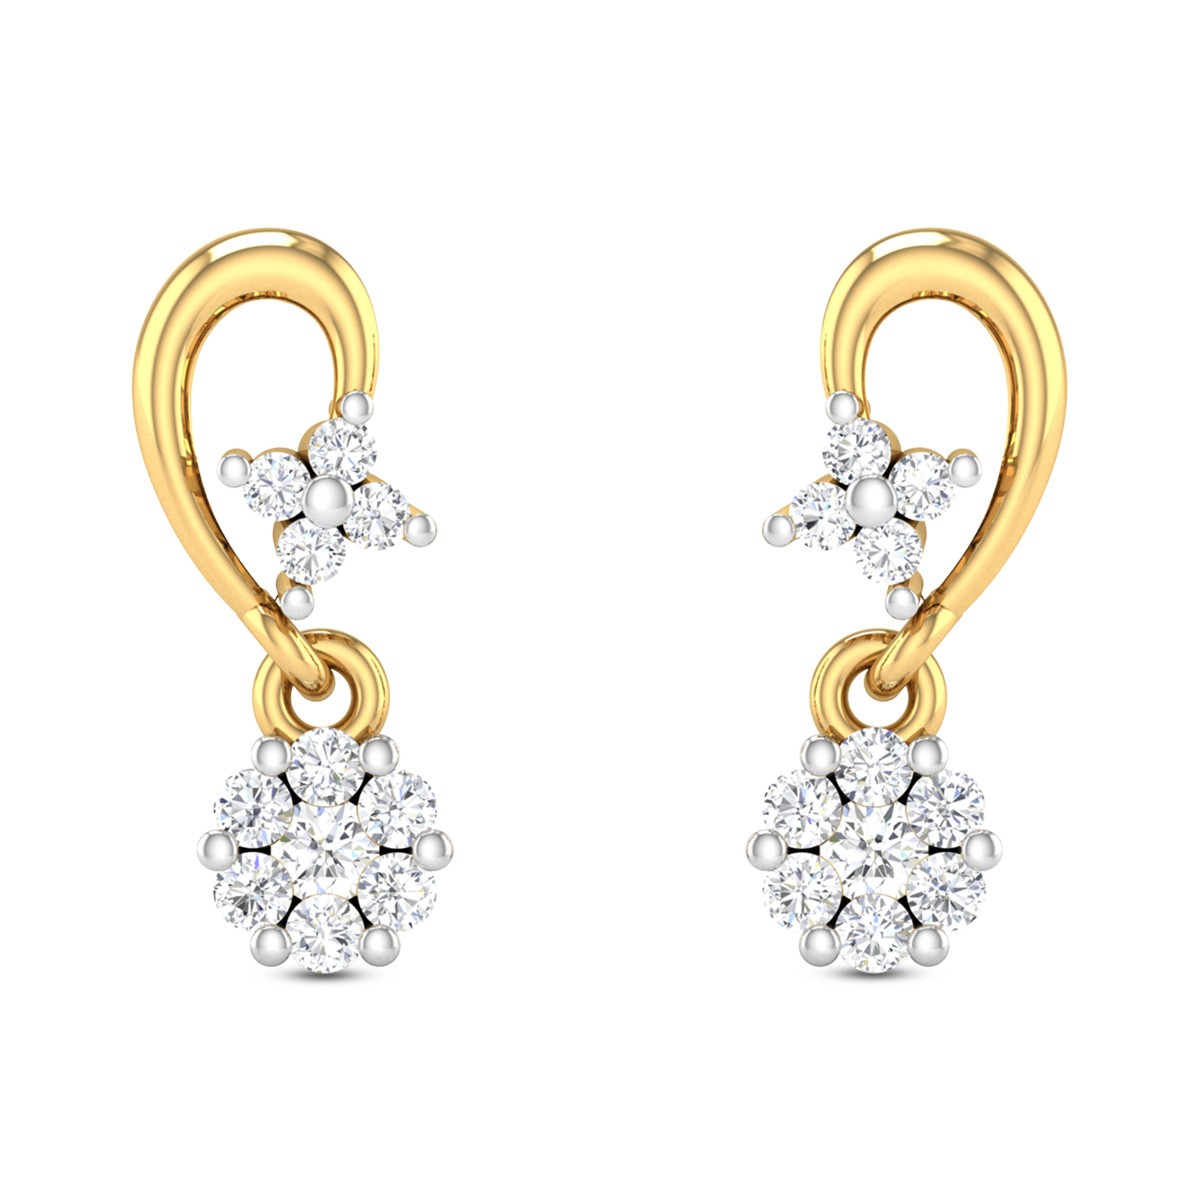 Meriel Diamond Earrings